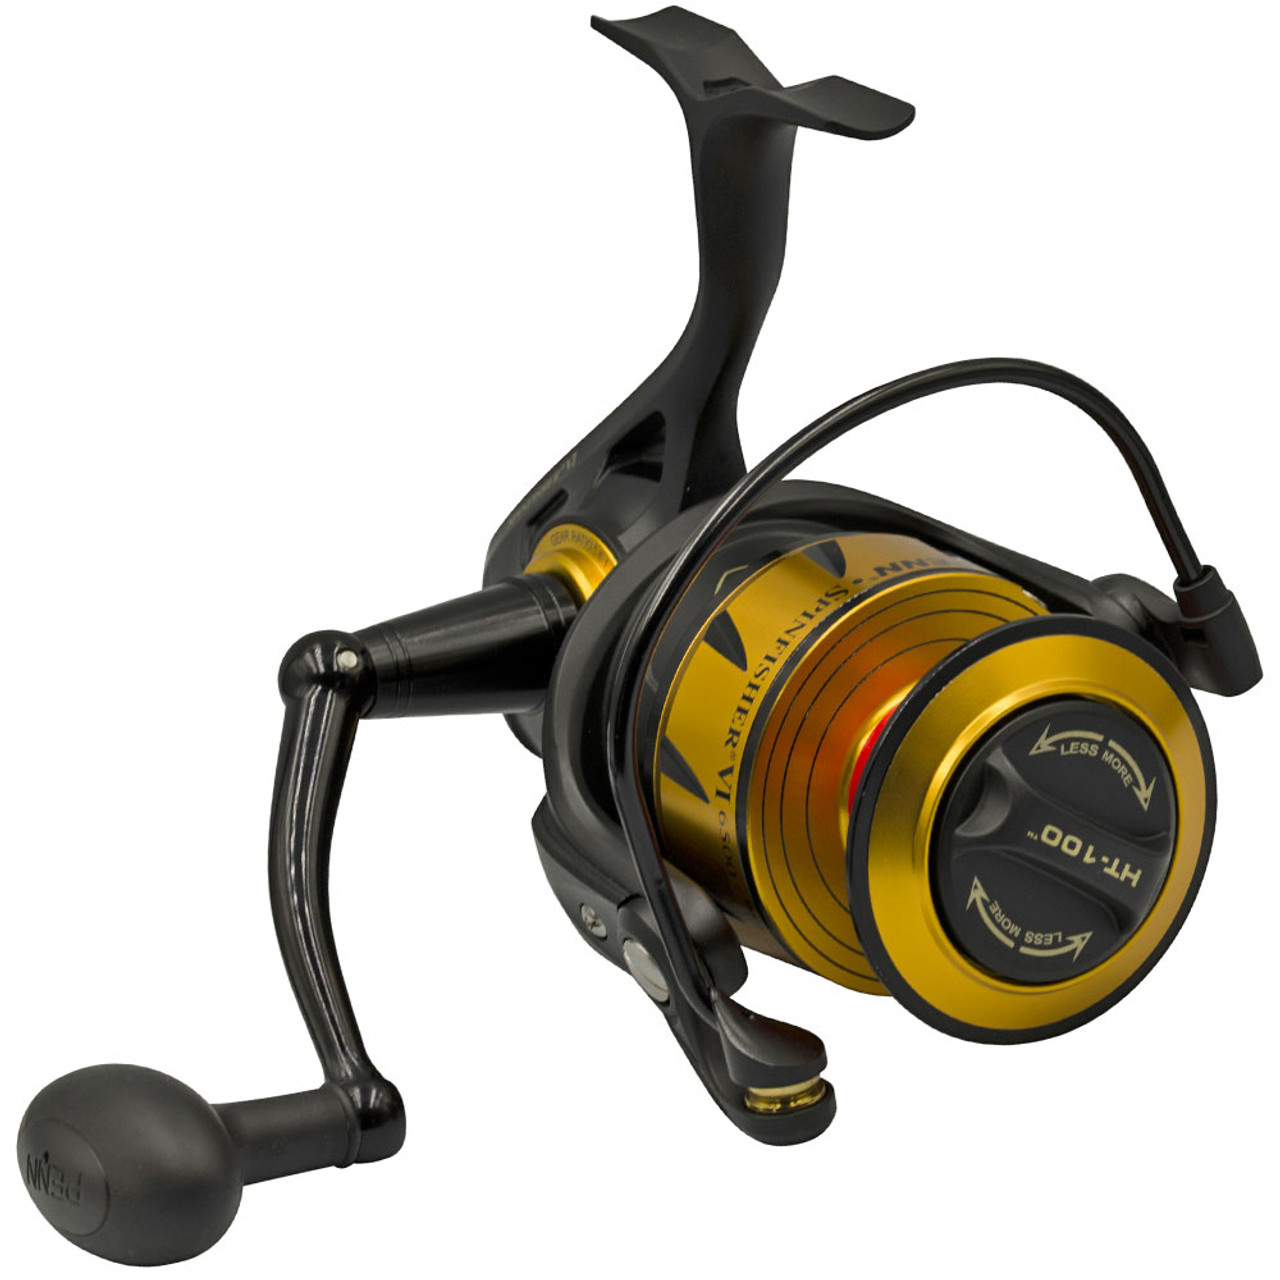 All Sizes Latest Models Penn Spinfisher SSVI Spin Sea Reel